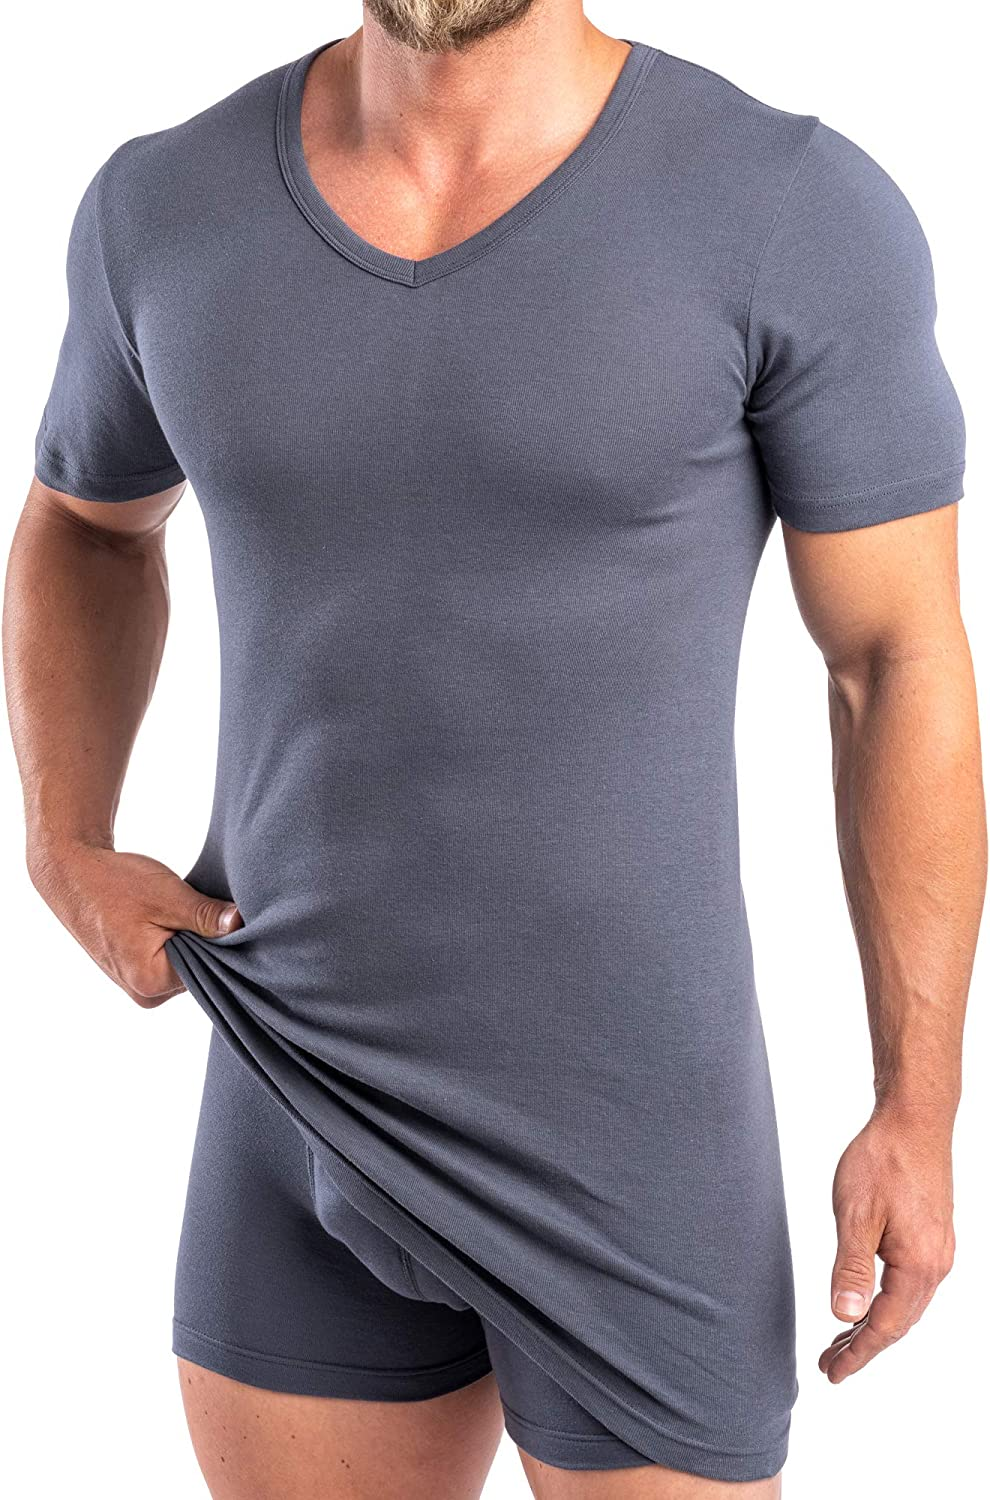 Made from Cotton//Modal HERMKO 164887 Pack of 2 Extra-Long Mens Shirt with V-Neck +10 cm